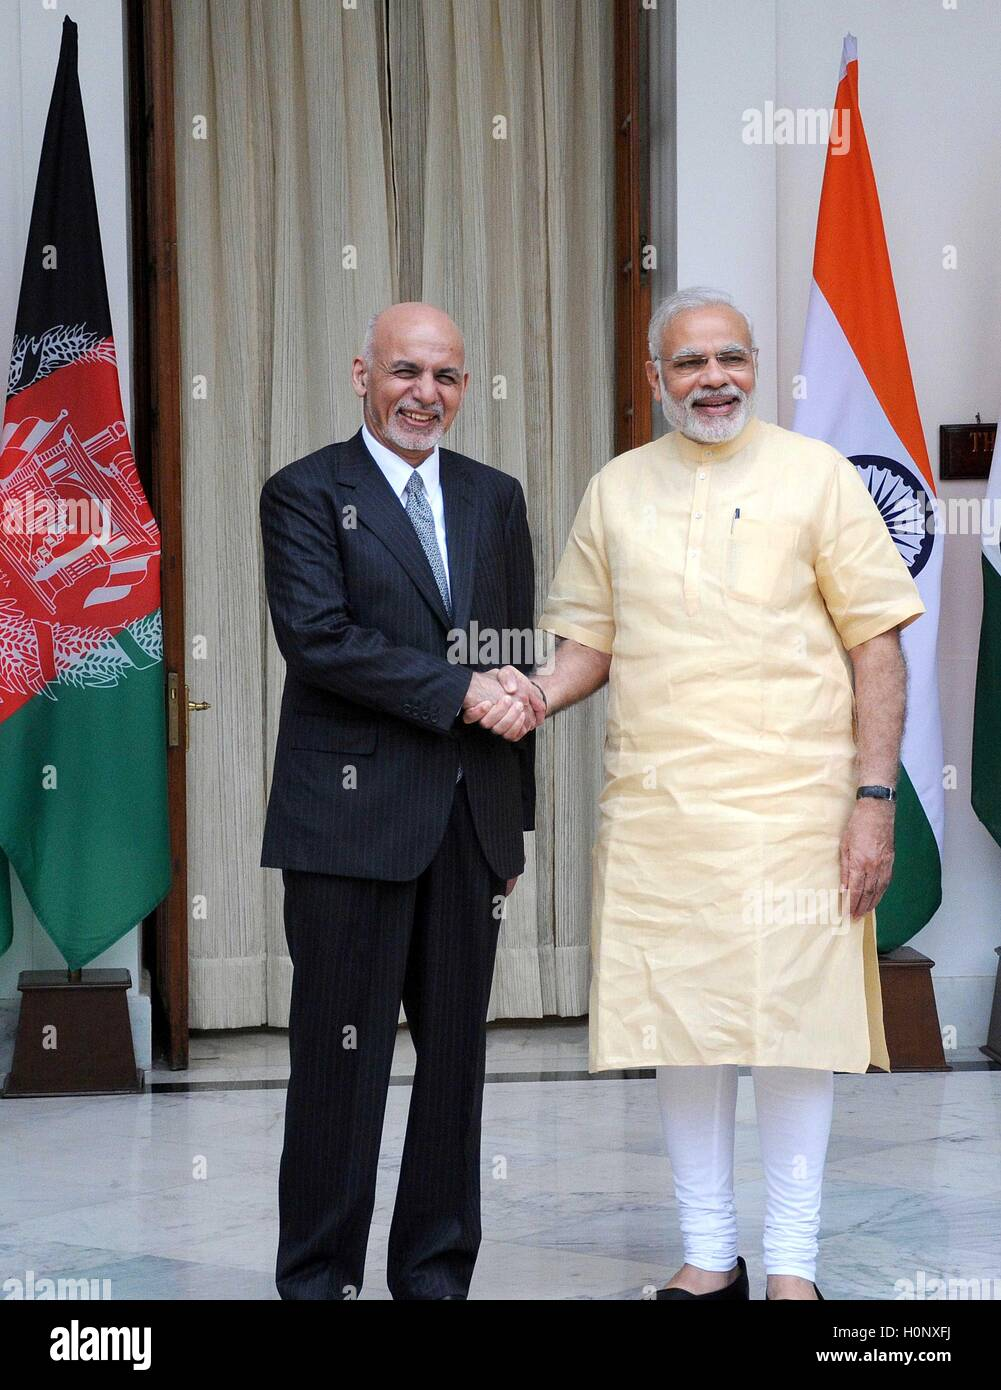 Prime Minister Narendra Modi Greets Afghanistan President Mohammad Ashraf Ghani At Hyderabad House In New Delhi India Stock Photo Alamy